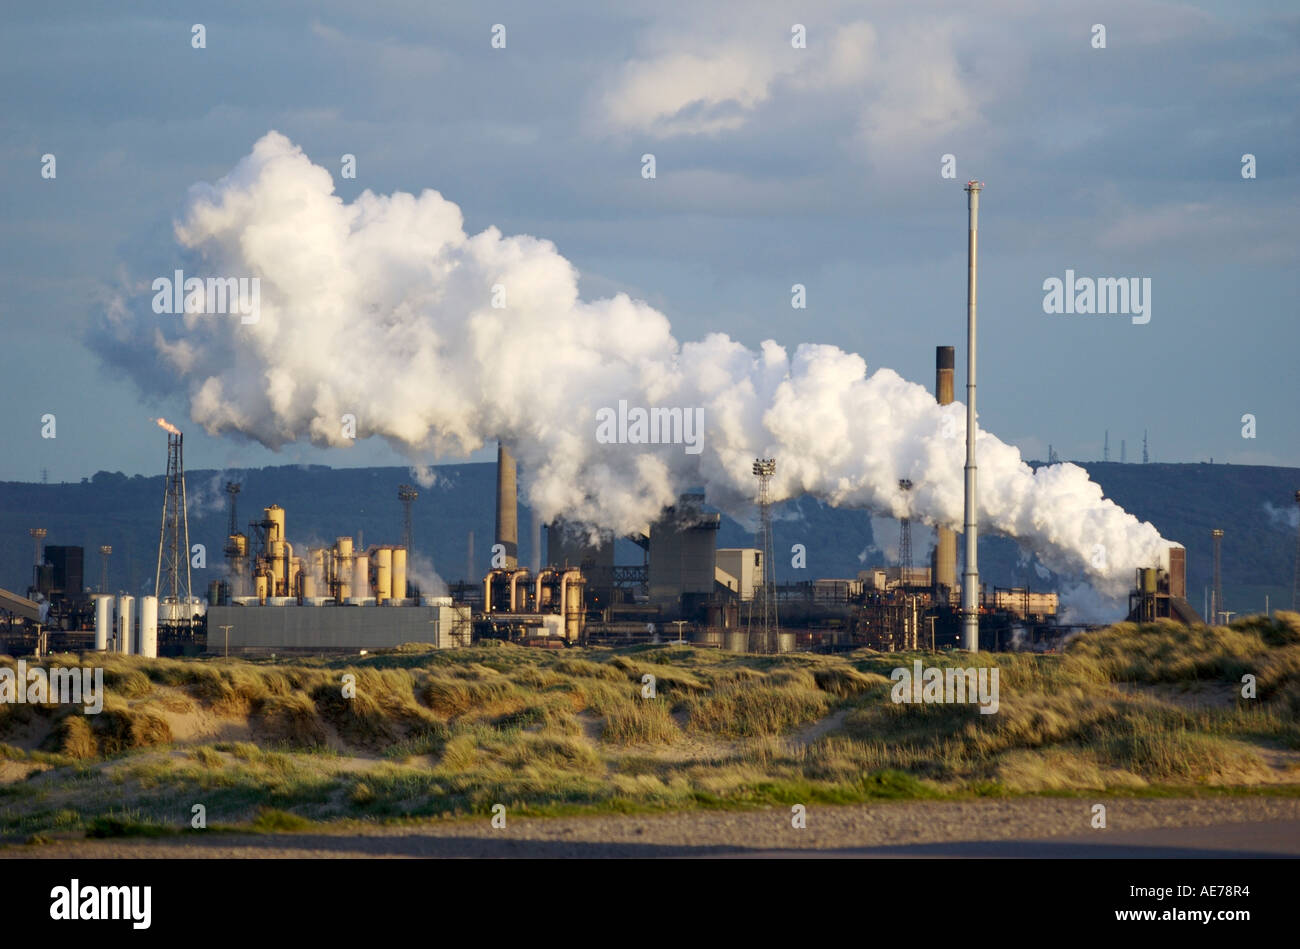 Corus steelworks with gasometer belching steam - Stock Image